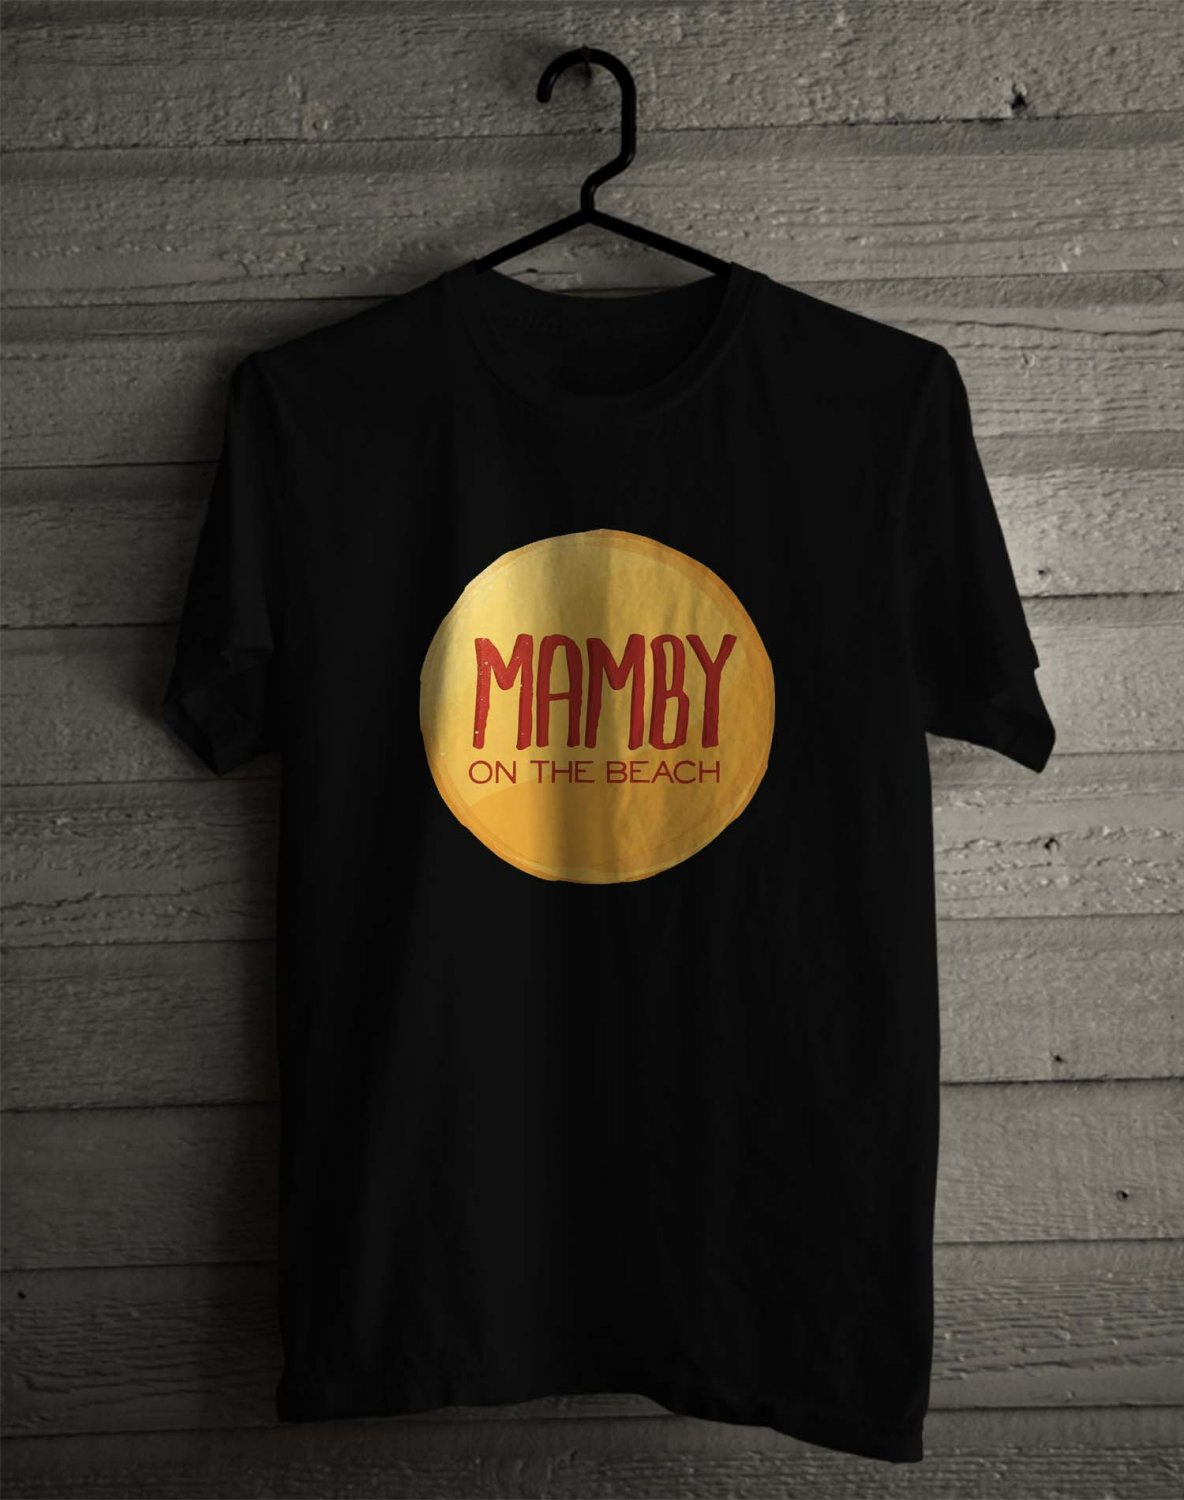 Mamby On The Beach Fest 2017 Black Tee's Front Side by Complexart